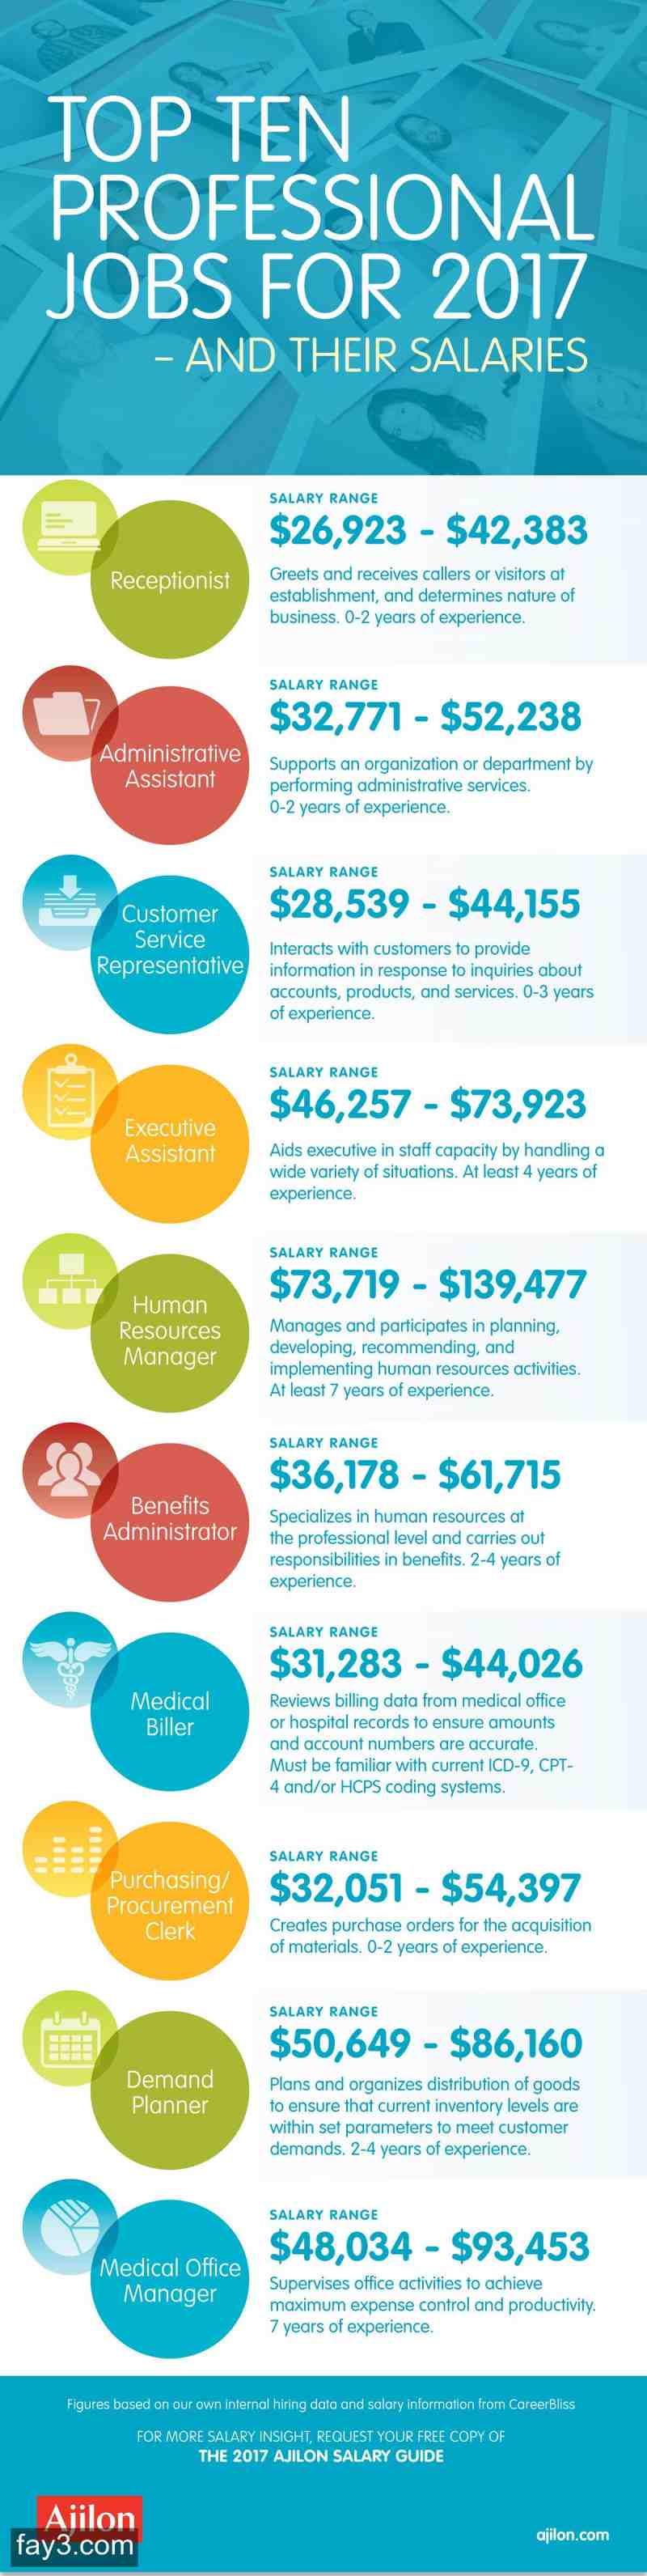 Top 10 Hottest Professional Jobs in 2017 Infographic Hr